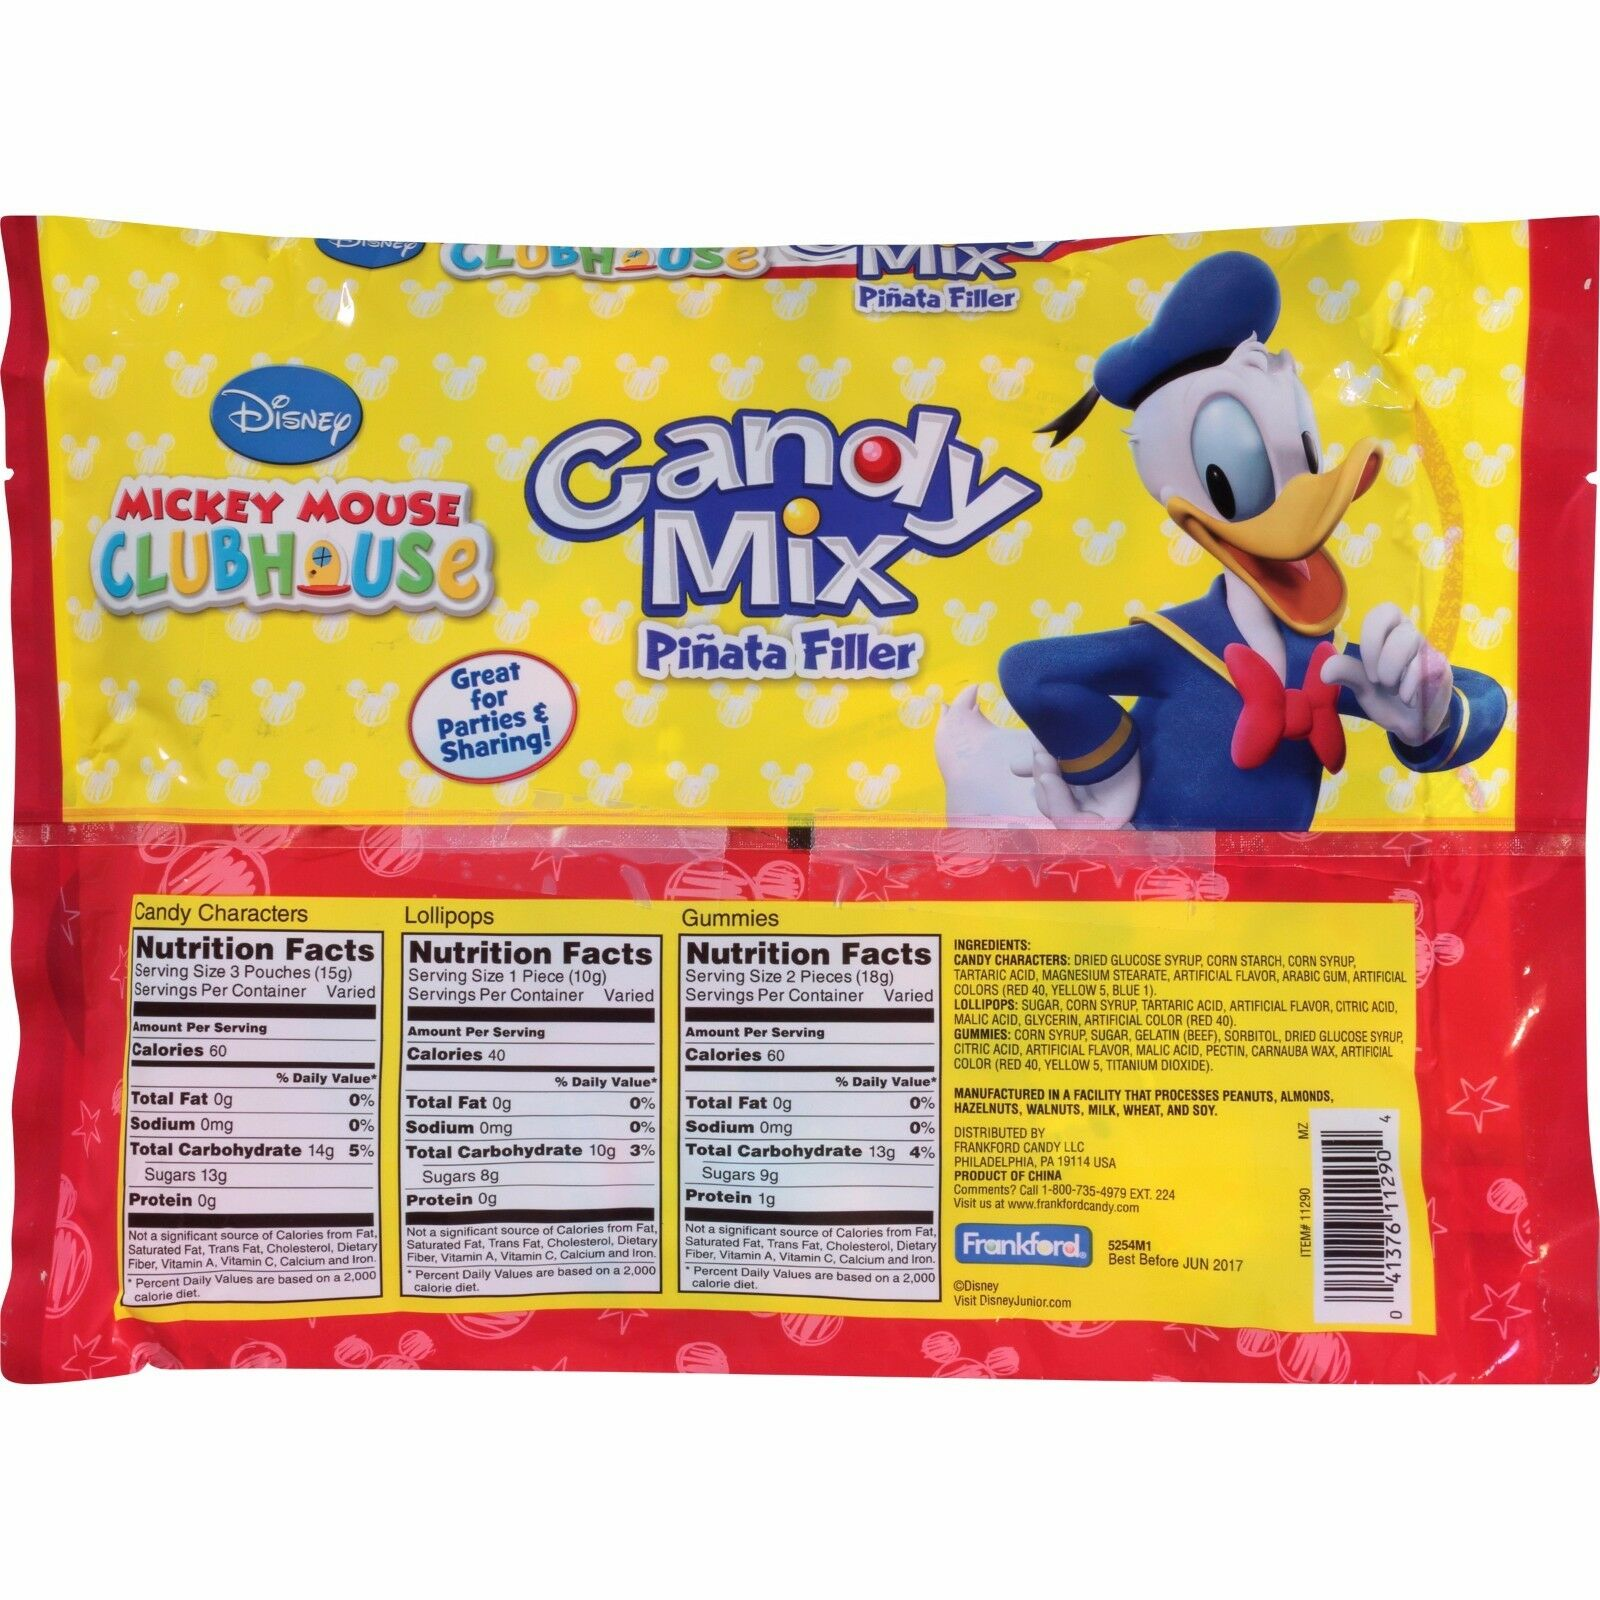 Disneys Mickey Mouse Clubhouse Candy Mix Pinata Filler | eBay